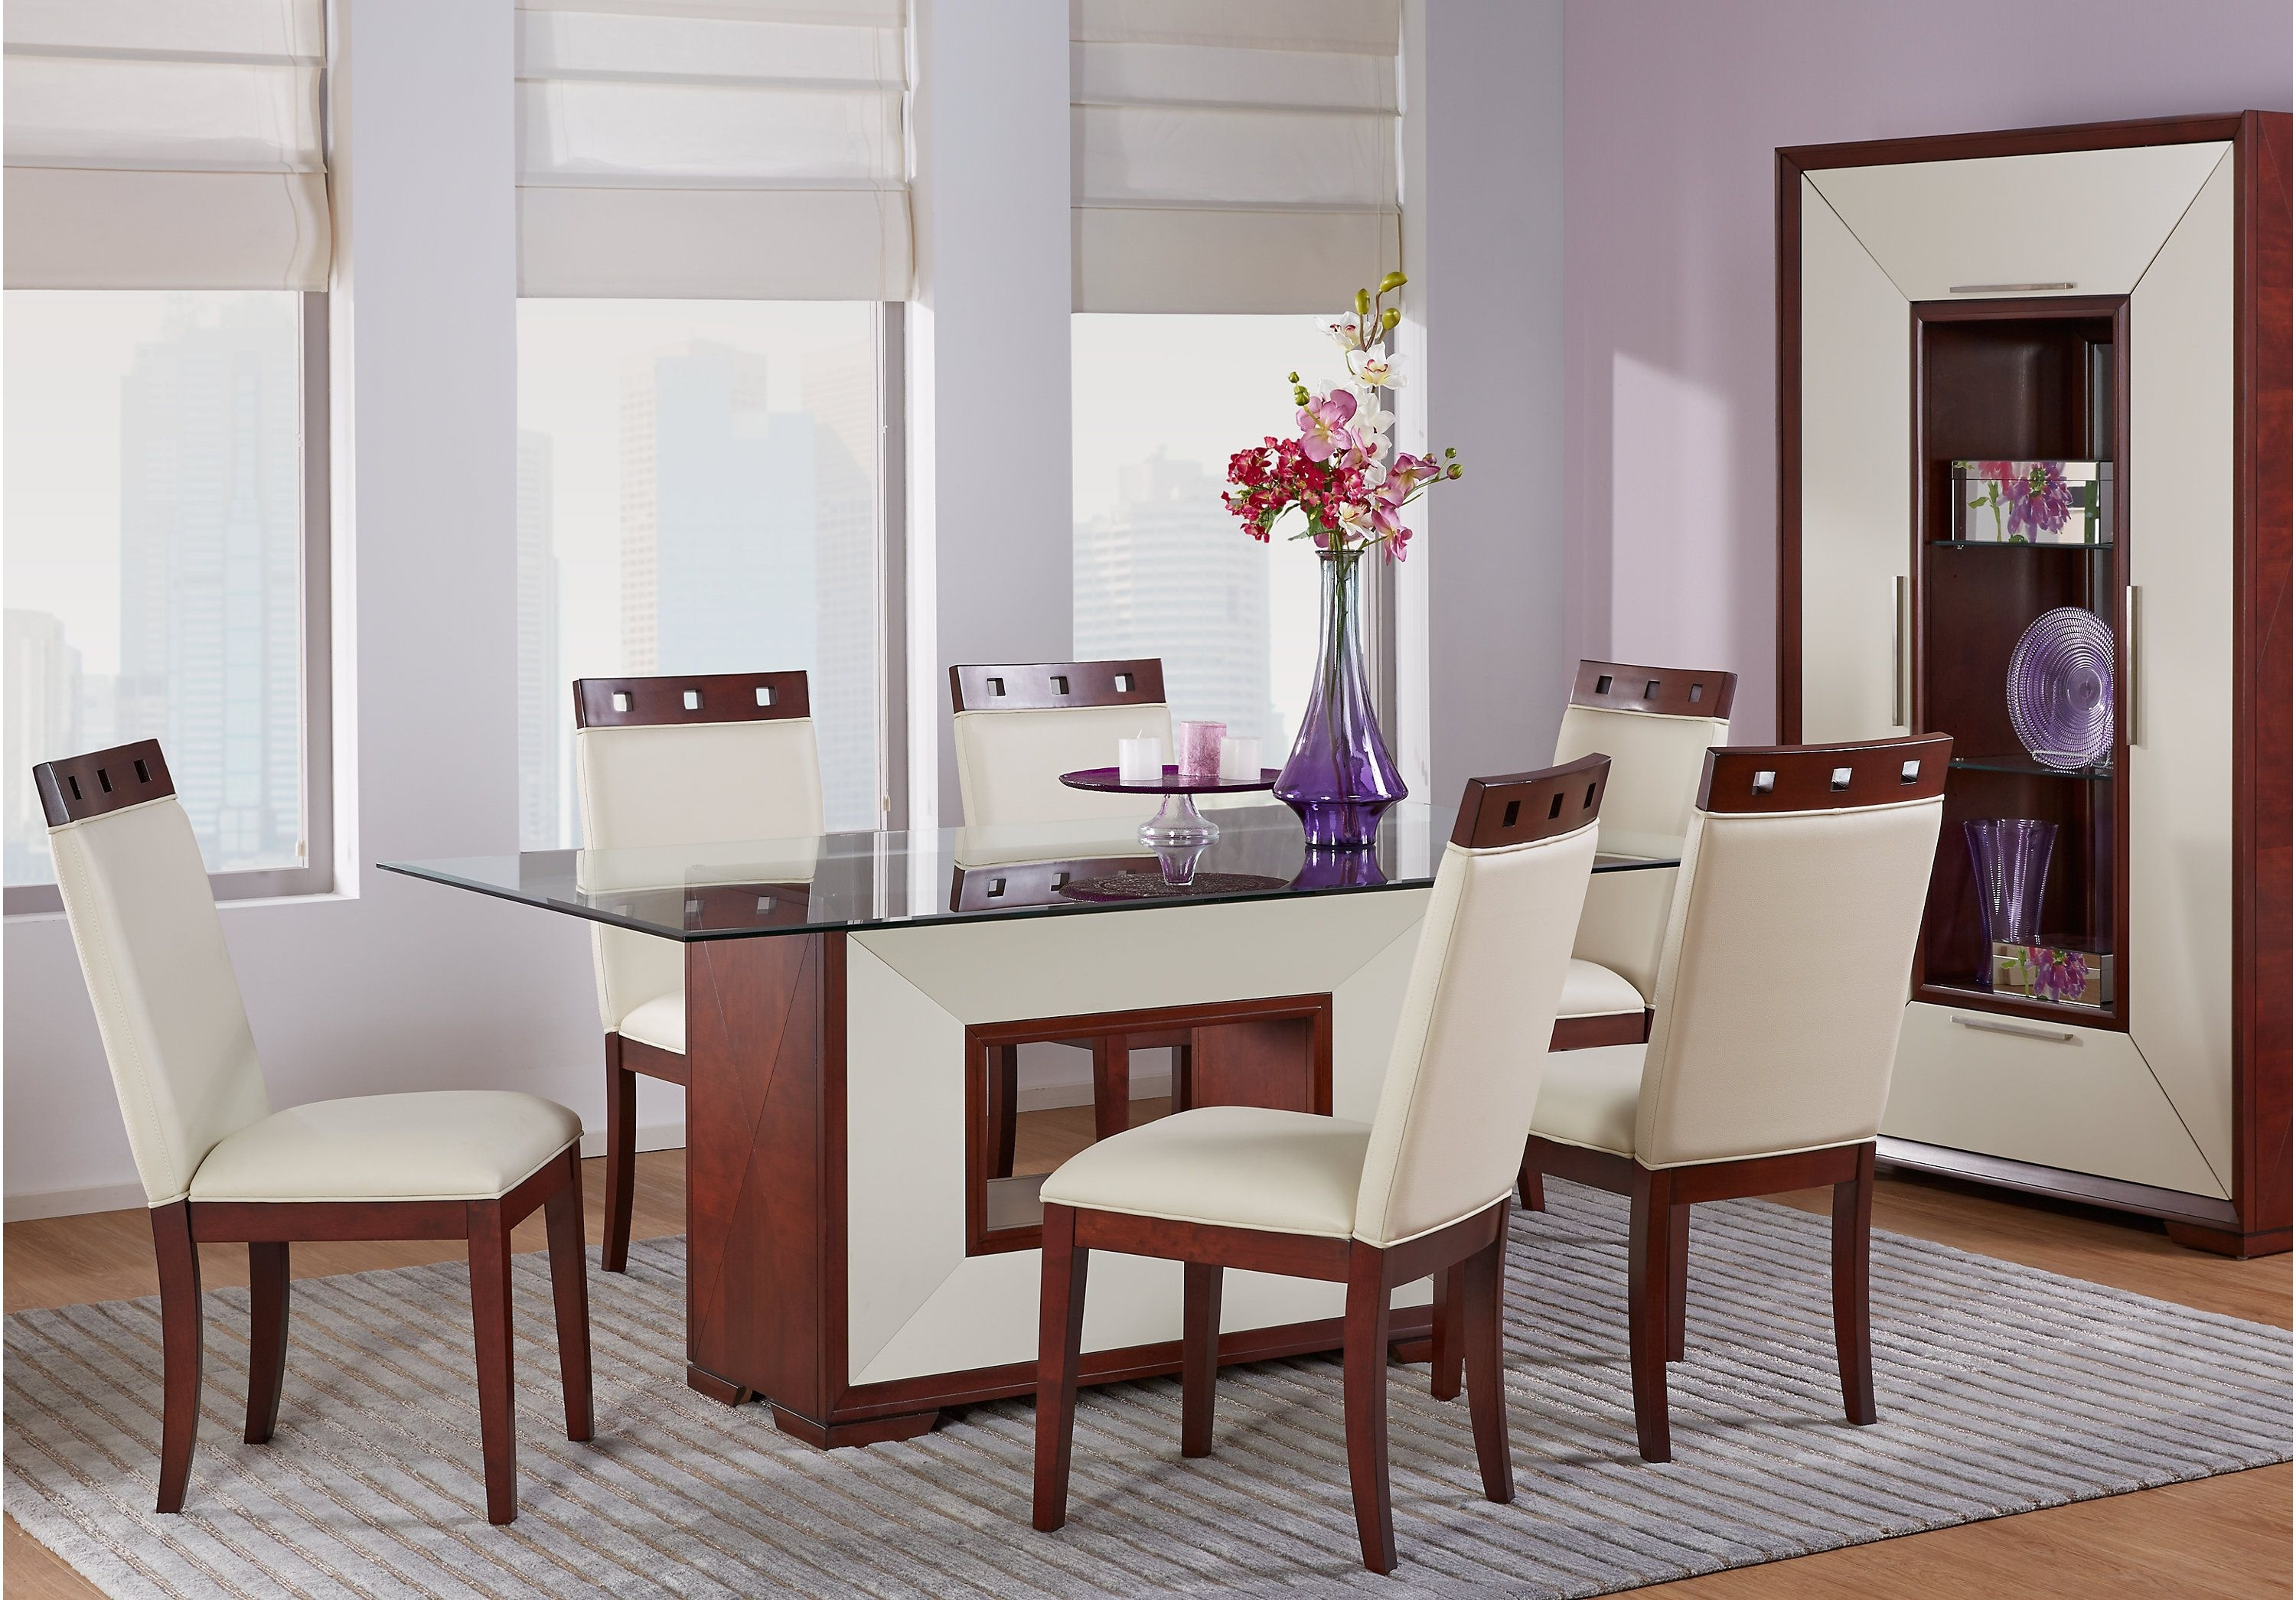 Sofia Vergara Savona Ivory 5 Pc Rectangle Dining Room With Glass Top Within 2017 Palazzo 9 Piece Dining Sets With Pearson White Side Chairs (View 13 of 20)